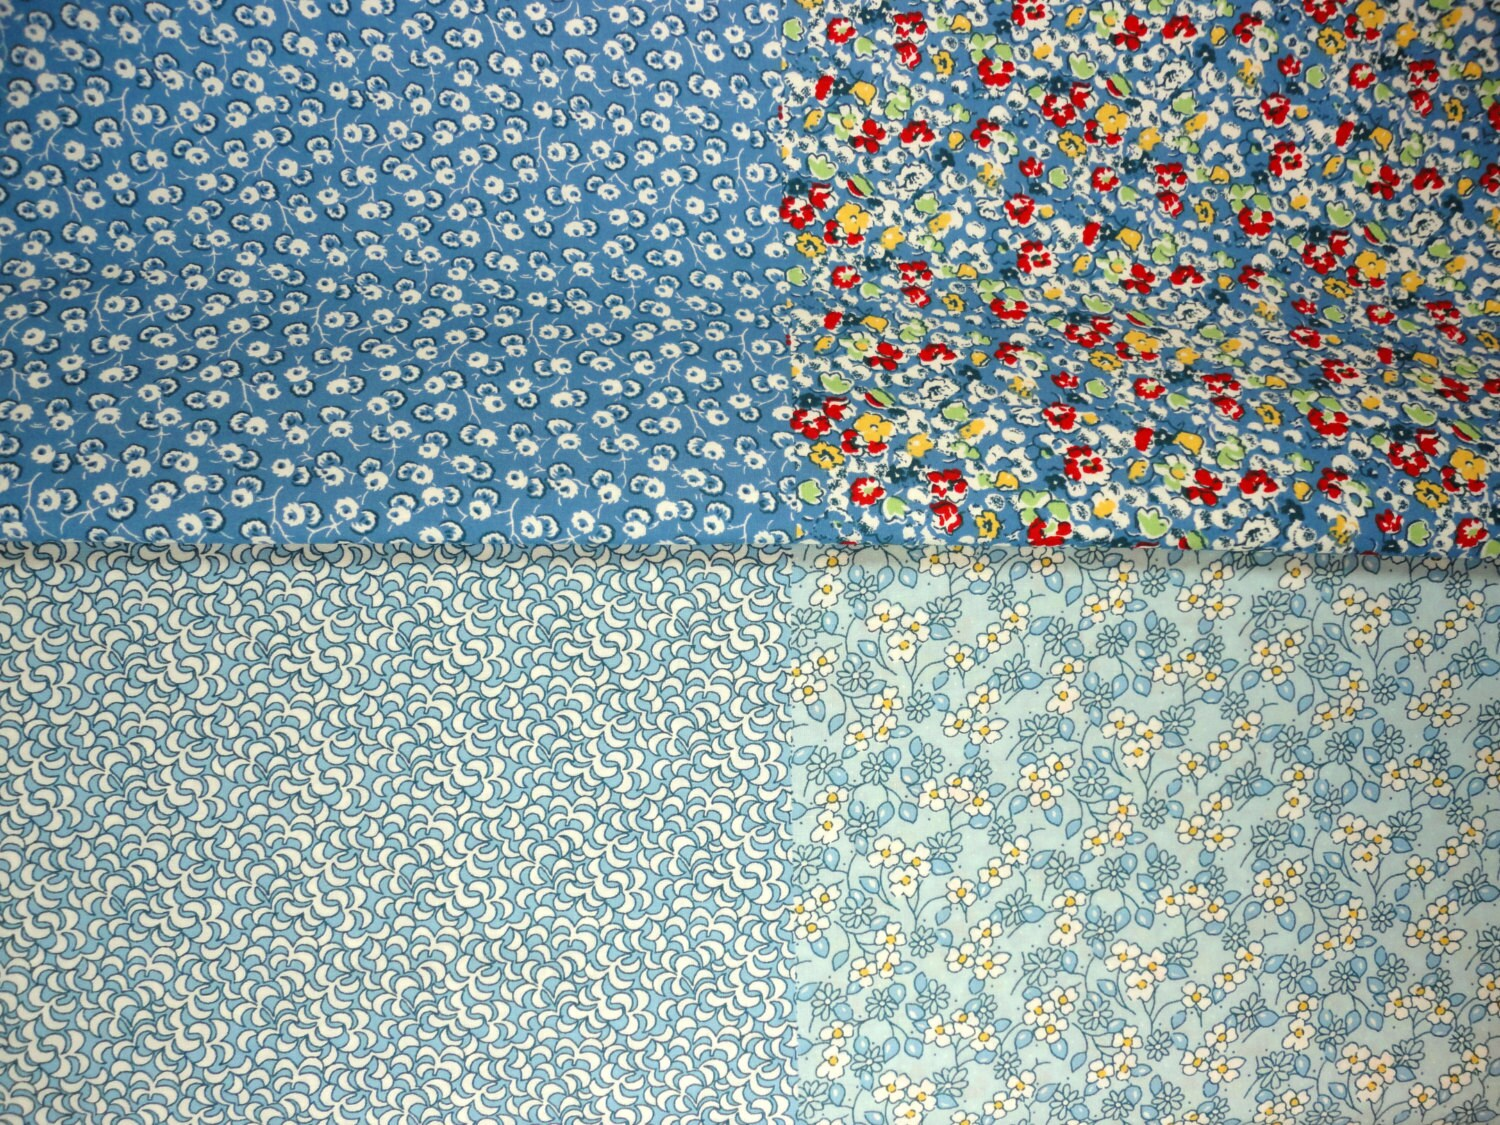 Flour Sack Fabric By The Yard 1930 39s Reproduction Flour Sack Prints Cotton Fabric 4